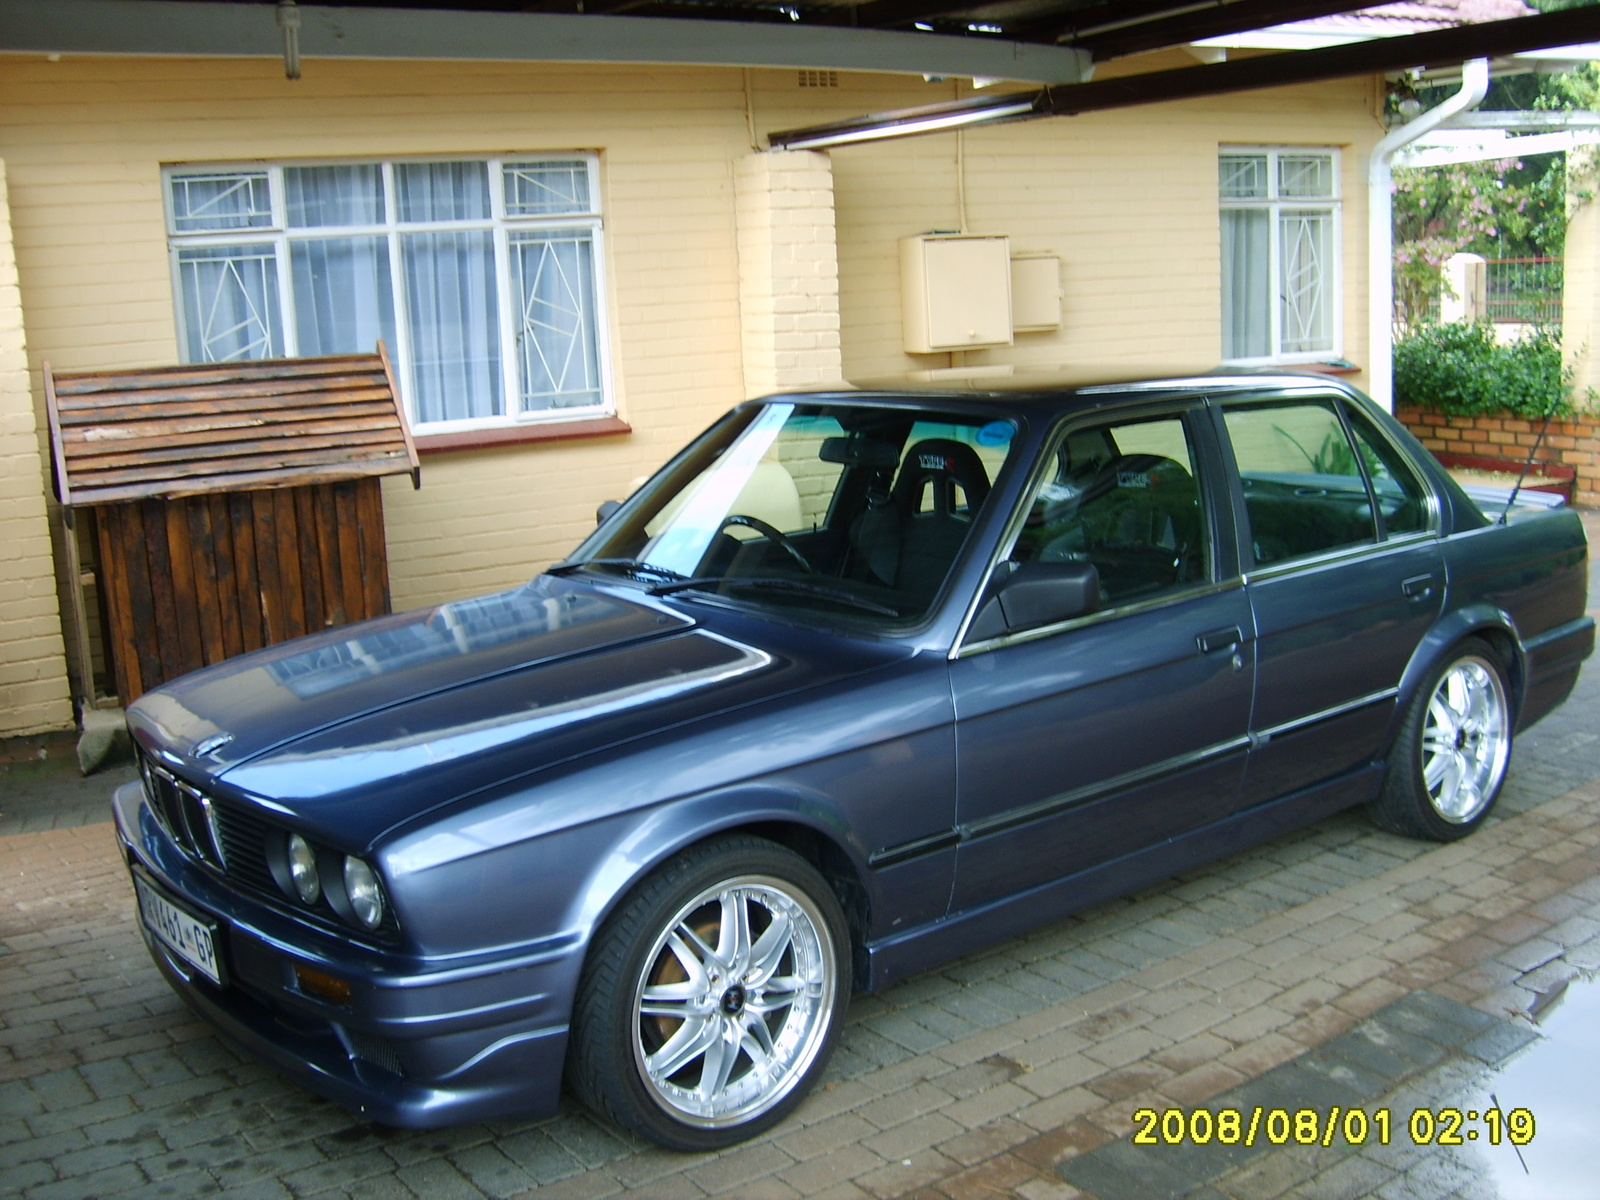 Bmw 320i 1982 Review Amazing Pictures And Images Look